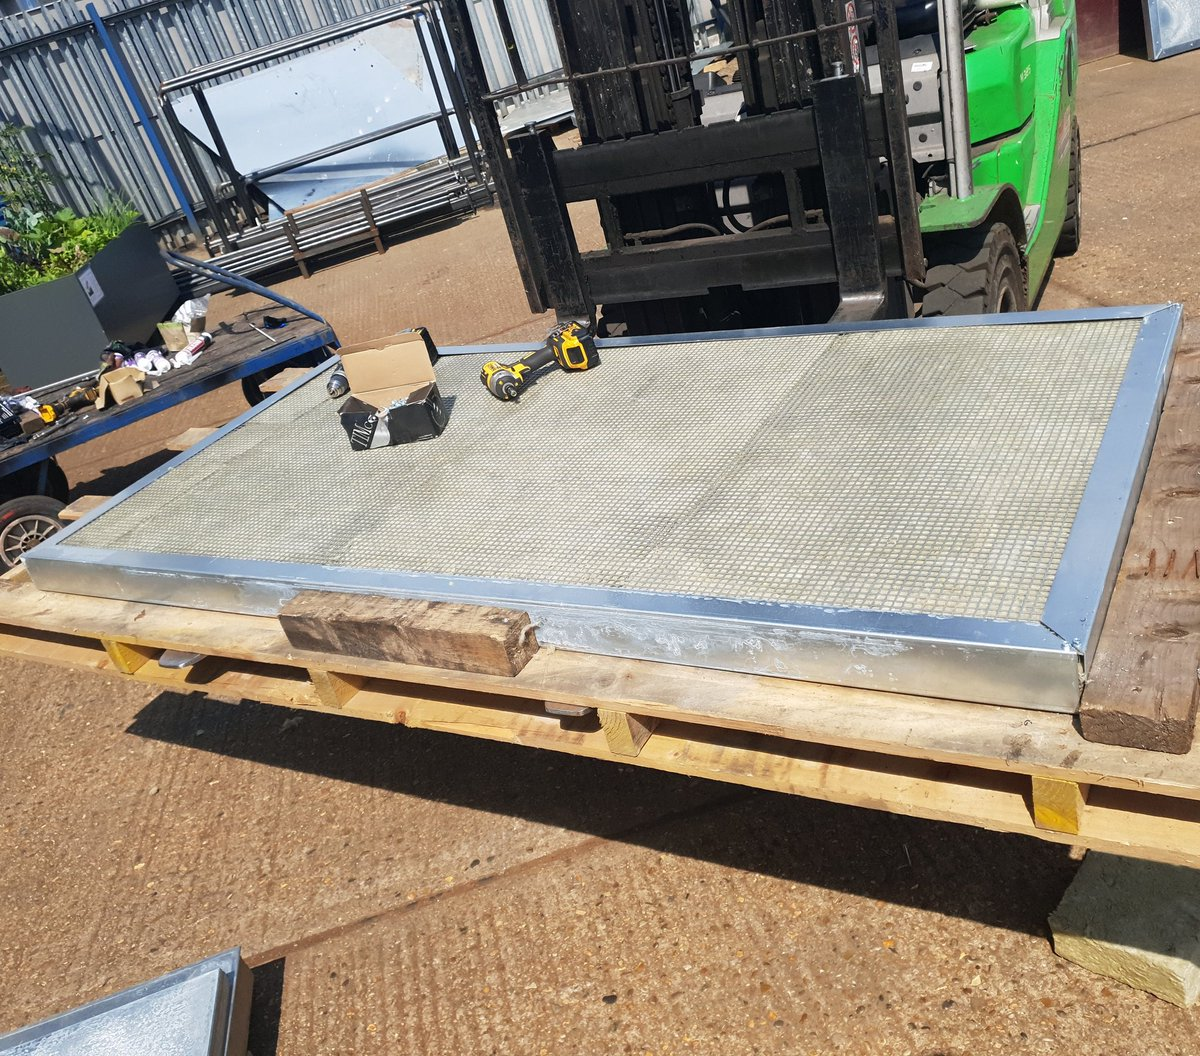 Acoustic Panel Assembly by the Rebel Fabrications Team #rebelfabrications #acoustic #noise #noisecontrol #structural #construction #steel #fabrication #london #architectural #crane #installation #rebelstrength #acoustics #neighbours #happy http://rebelstrength.co.uk